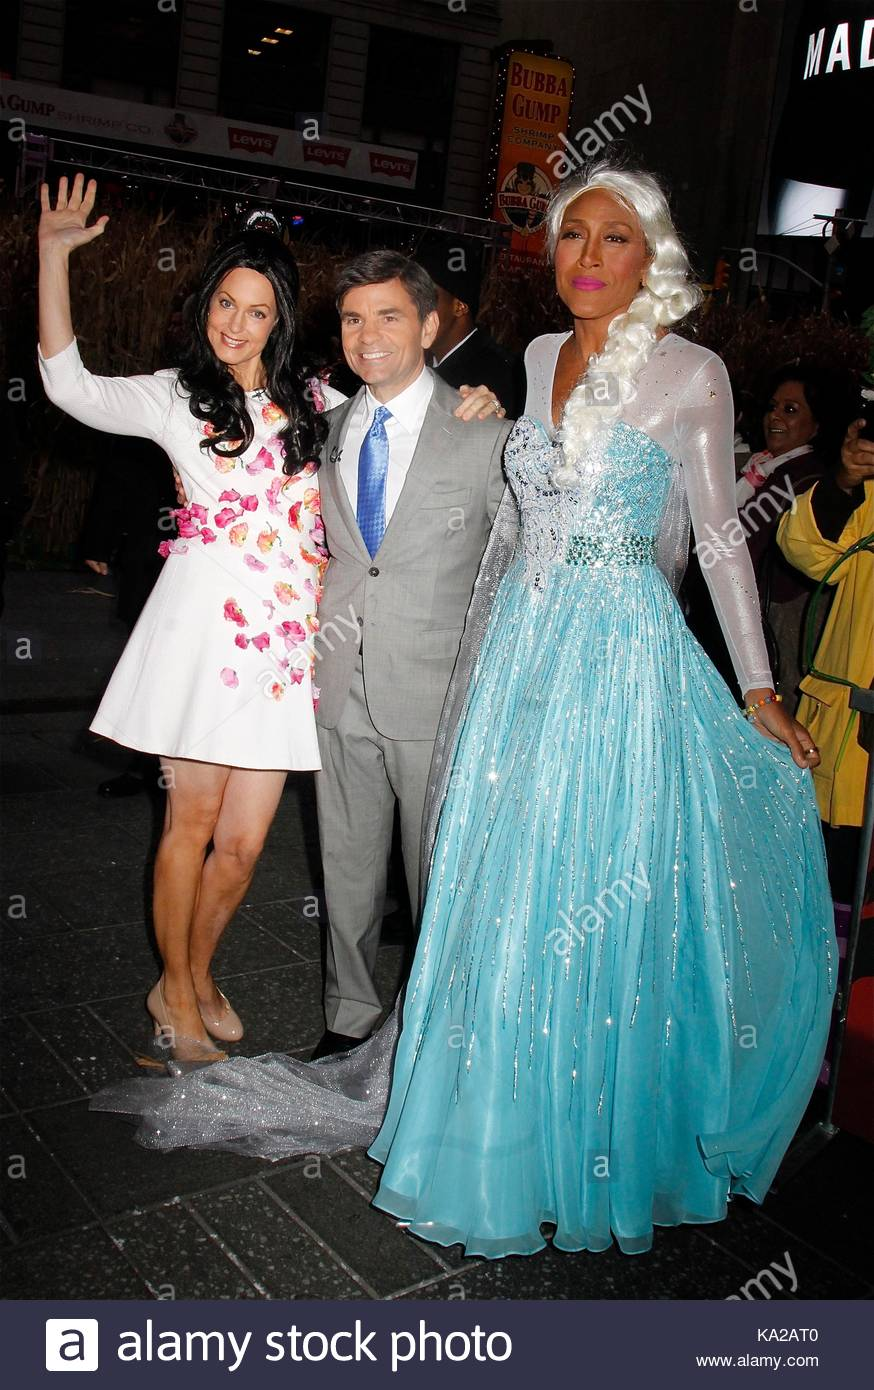 Alexandra Wentworth George Stephanopoulos and Robin Roberts. u0027Good Morning Americau0027 celebrates Halloween in NYCu0027s Times Square.  sc 1 st  Alamy & Alexandra Wentworth George Stephanopoulos and Robin Roberts. u0027Good ...